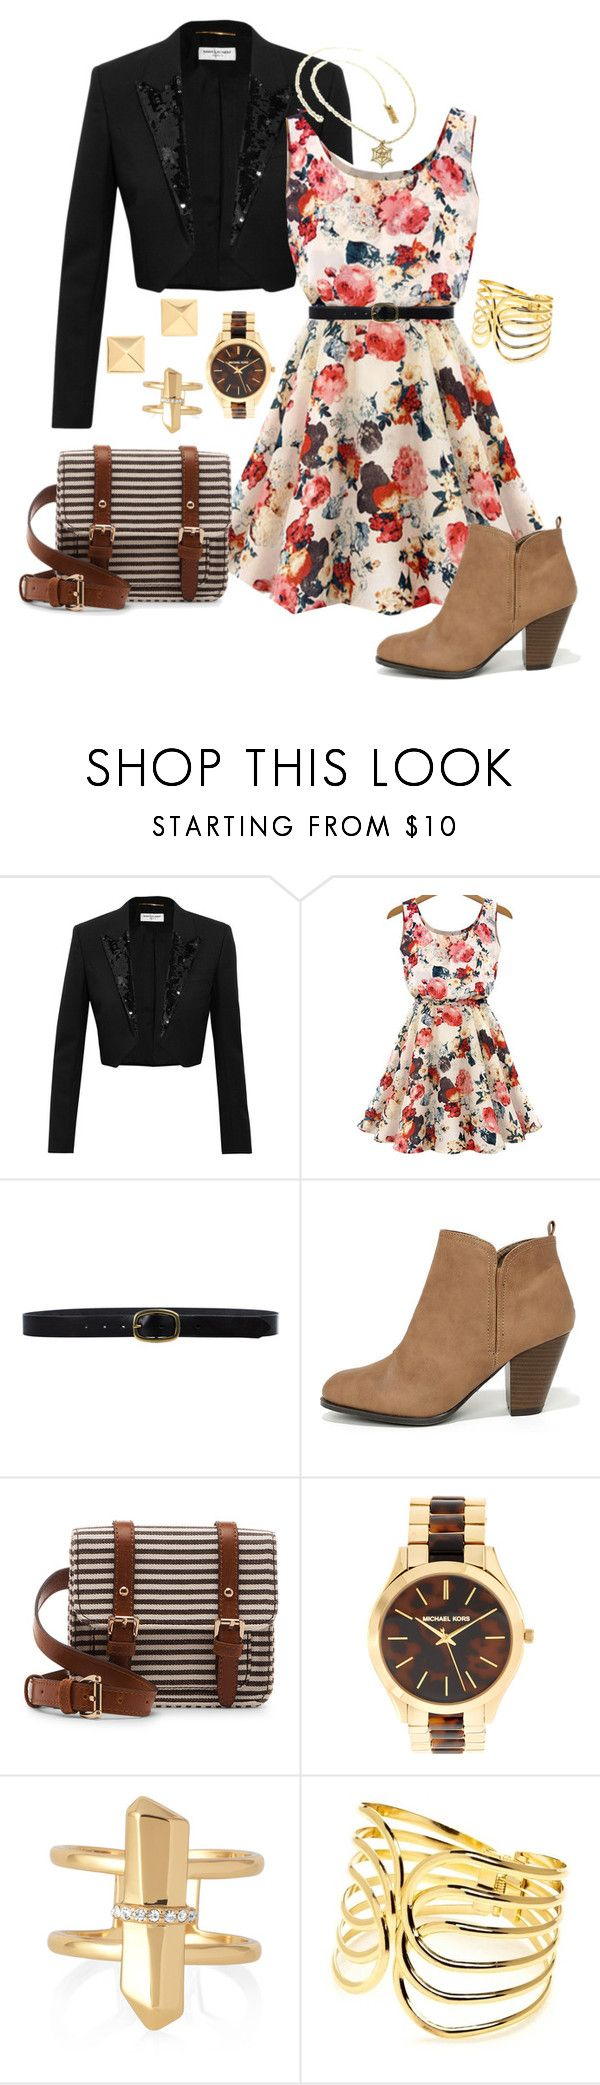 """""""Flowers & Stripes"""" by bebe6121985 on Polyvore featuring moda, Yves Saint Laurent, Linea Pelle, Qupid, Vince Camuto, Sole Society, Michael Kors, Stella & Dot i New Directions"""